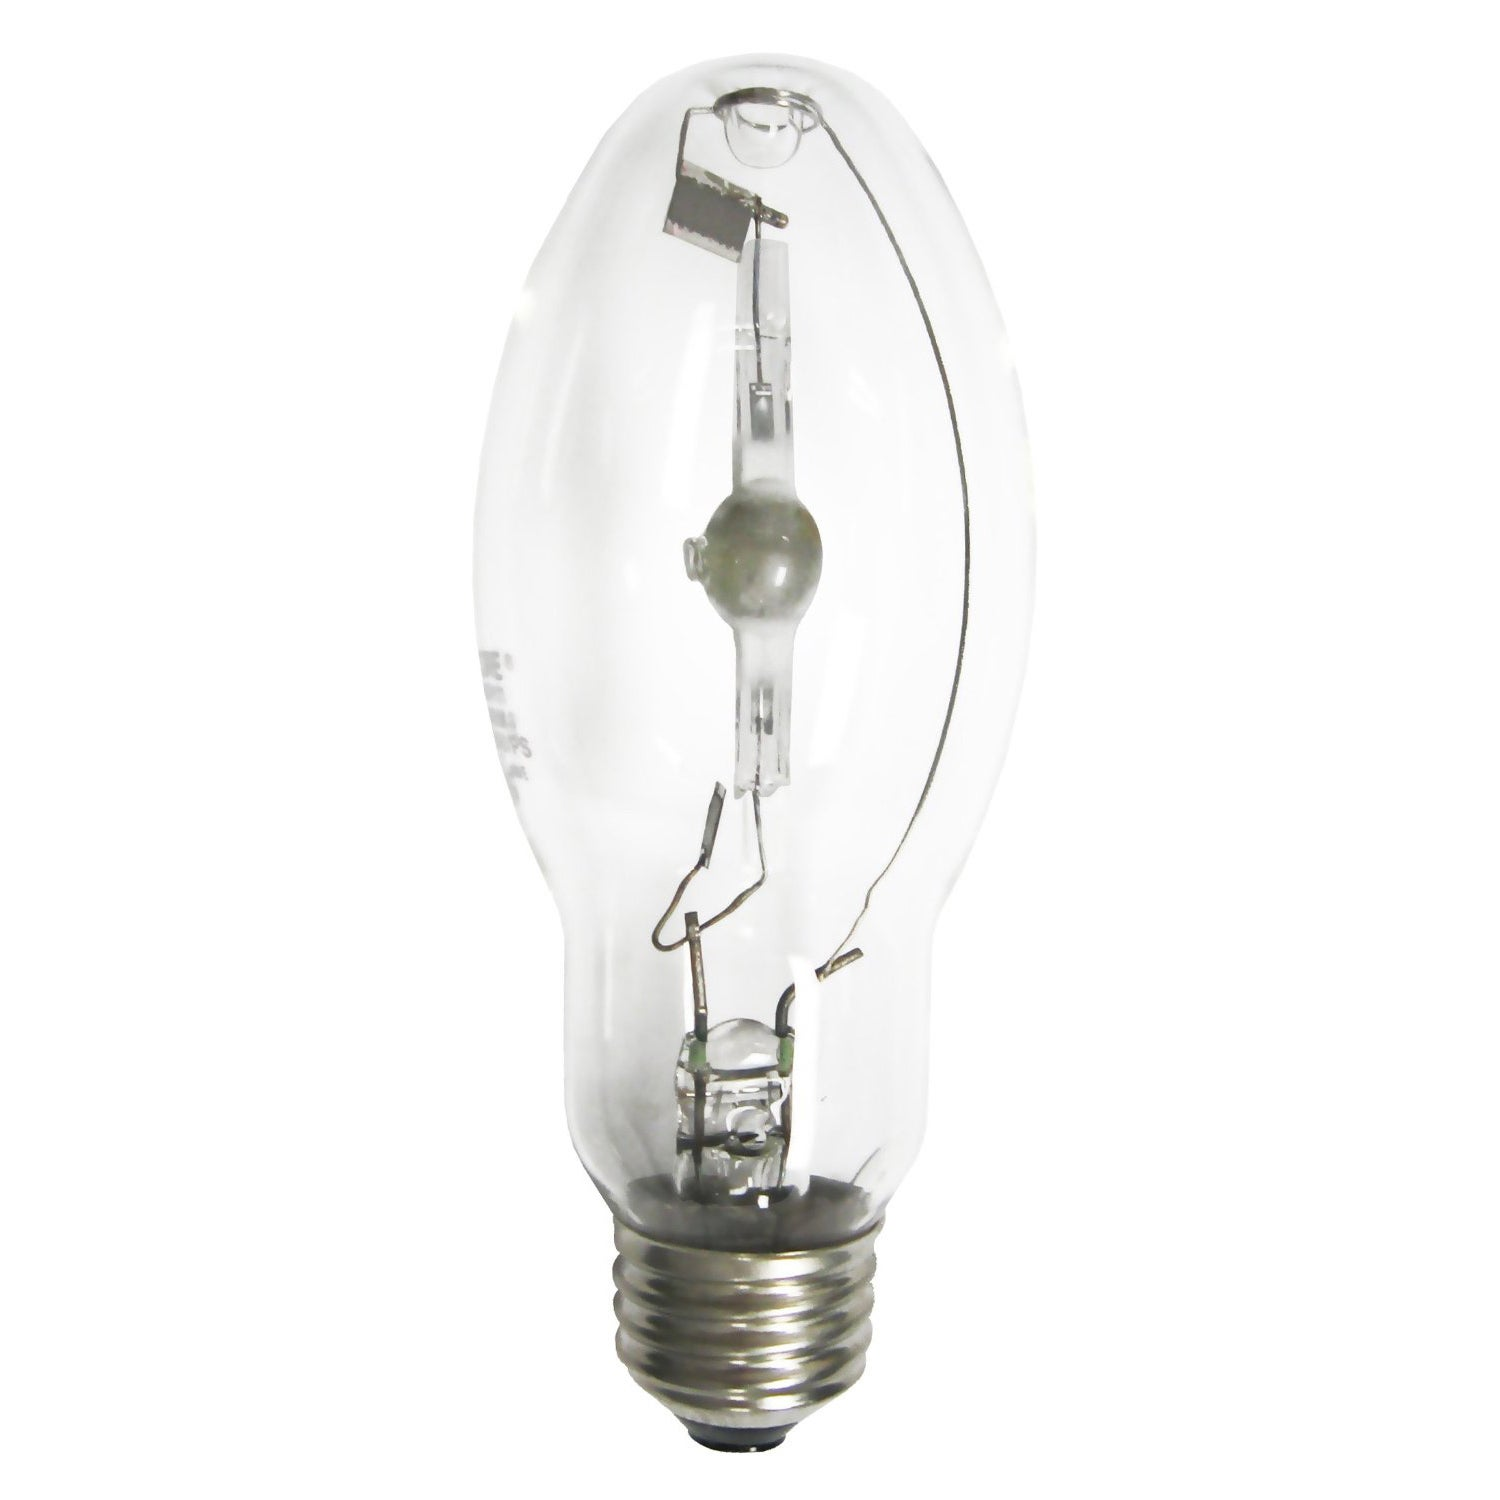 Designers Edge L788 100 Watt Mercury Vapor Light Bulb (Light bulbs), Clear (Glass)